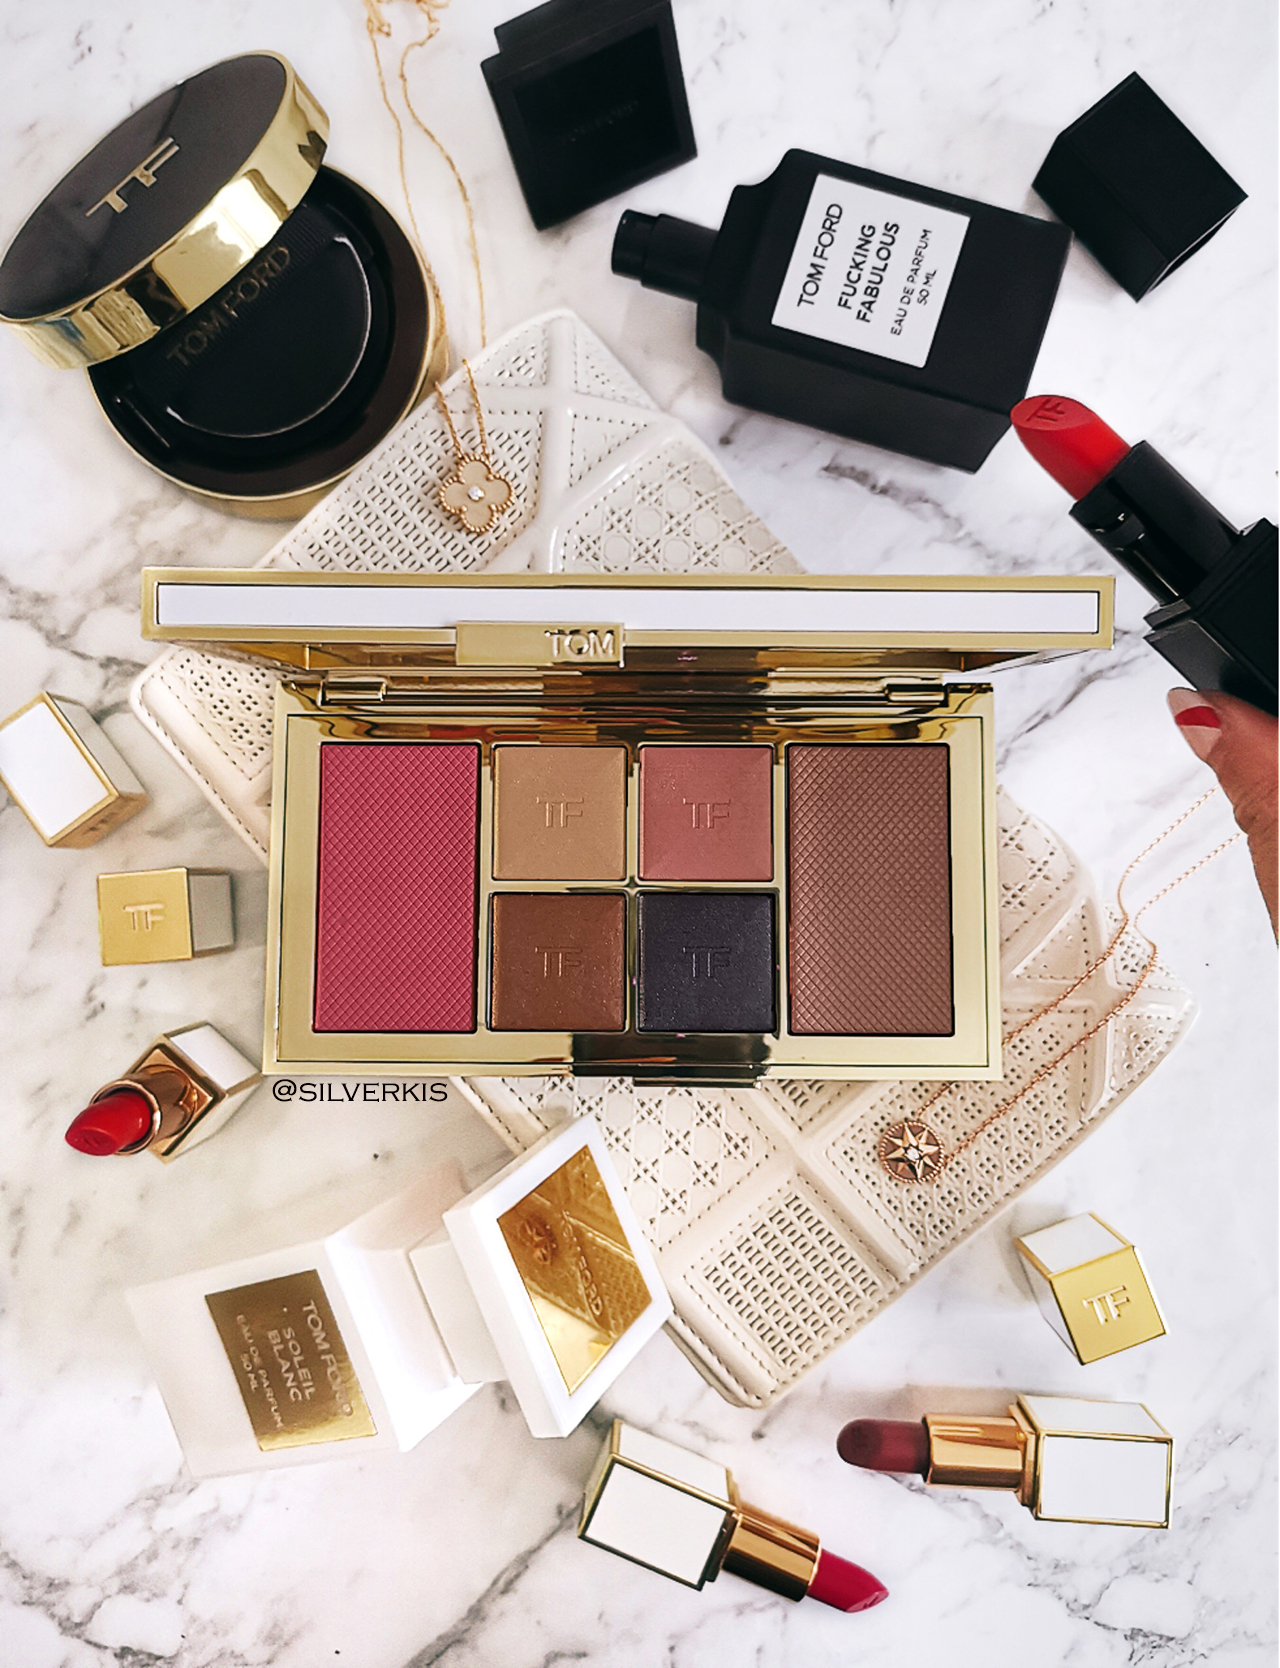 Tom Ford Winter Soleil 2018 Eye & Cheek Palette